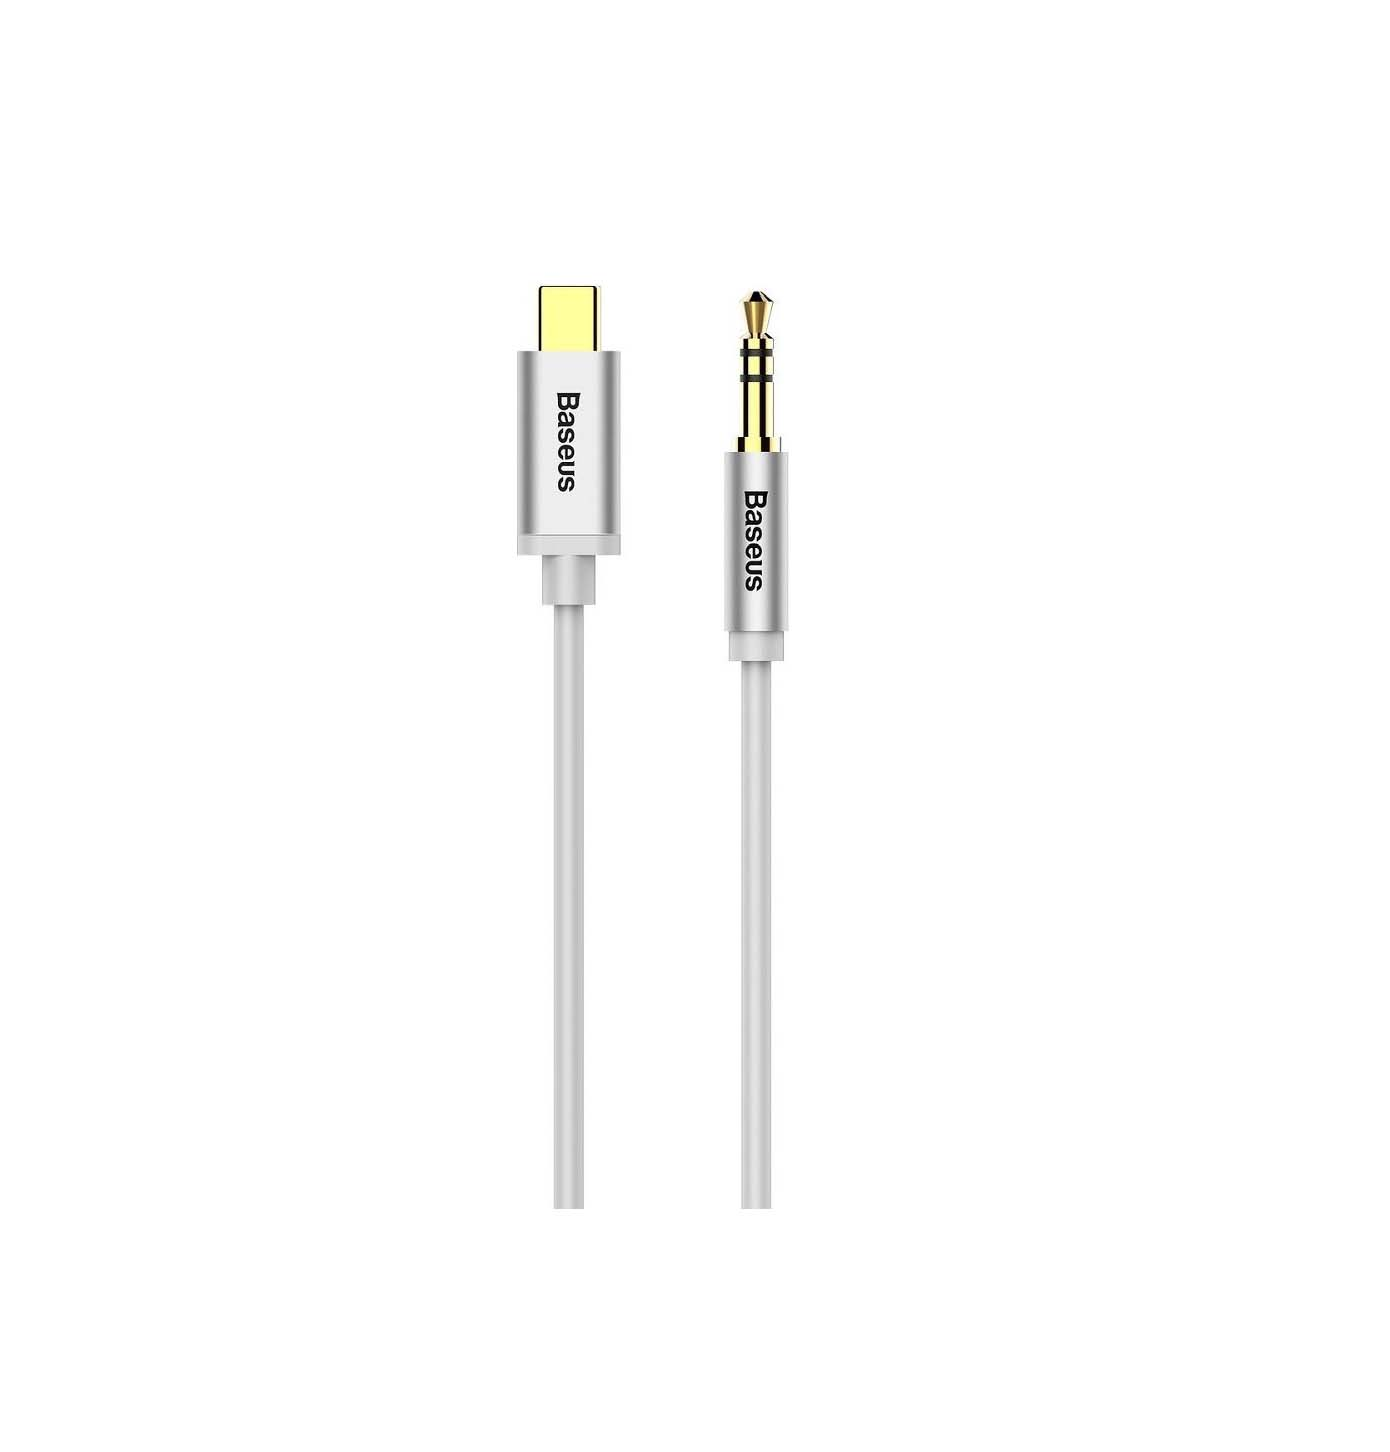 Baseus Yiven Regular USB 2.0 Cable USB-C Male - 3.5mm Male 1.2m CCAM01-02 Silver